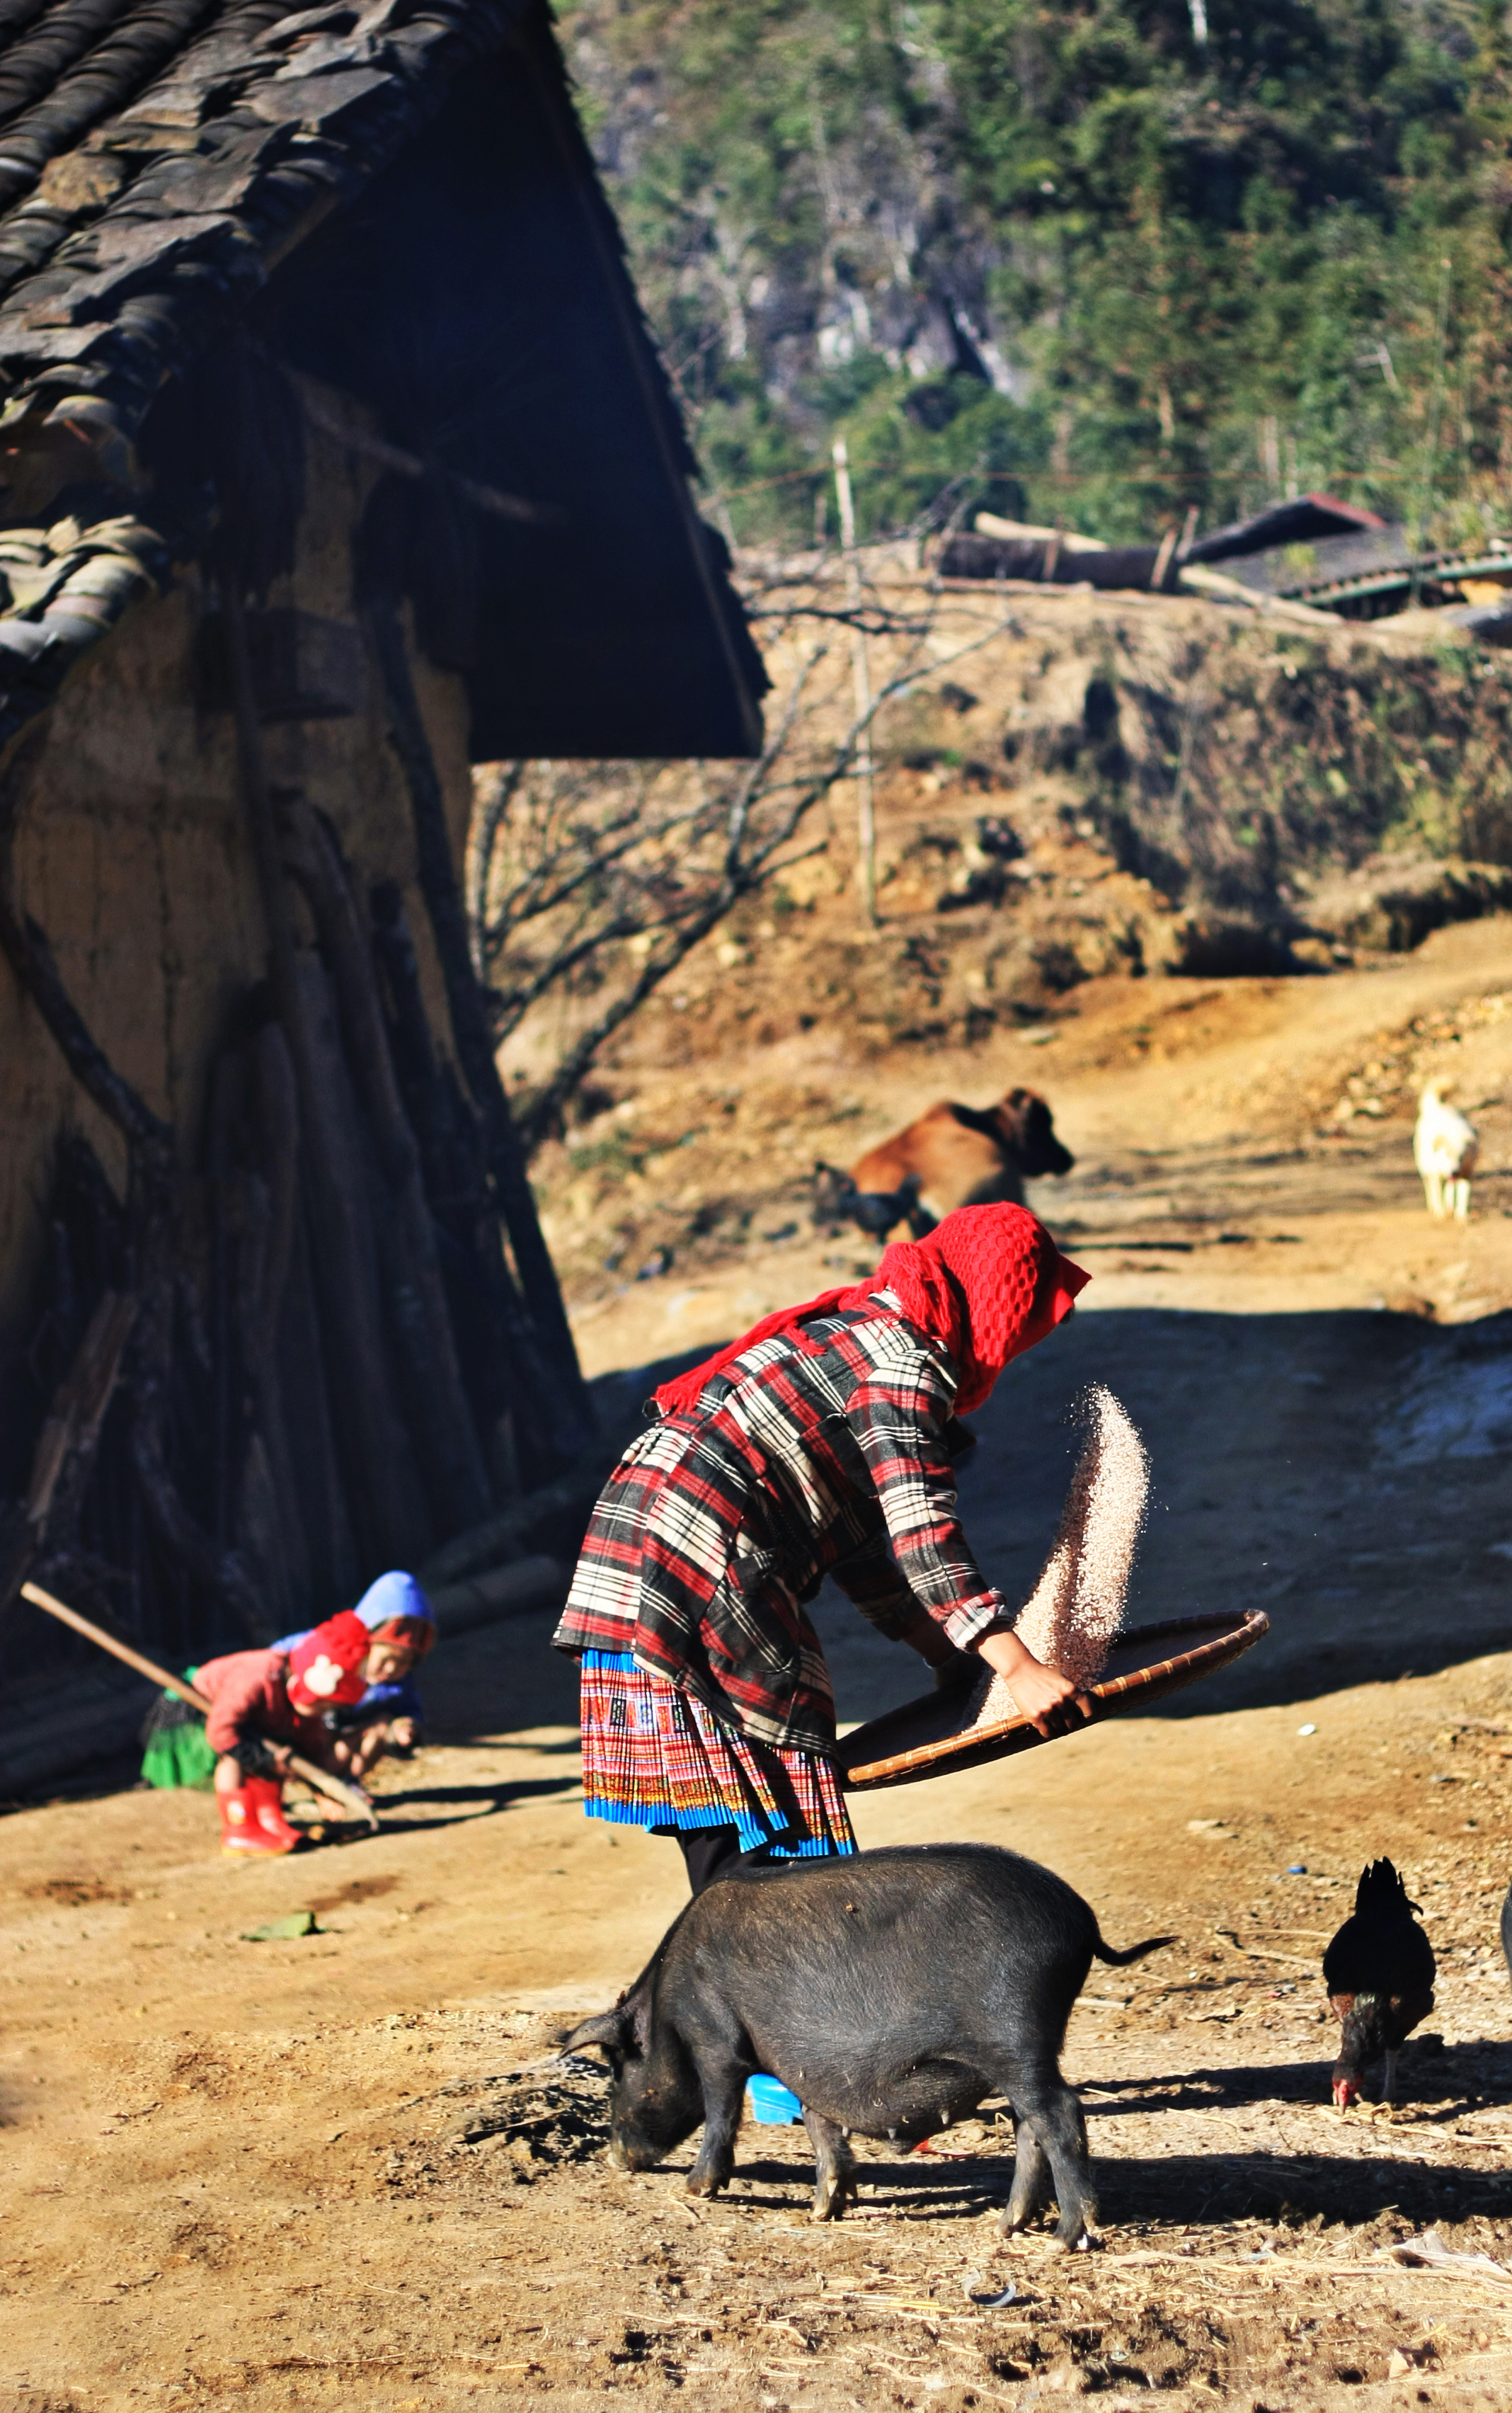 Pull out your weenie and jerk off to this